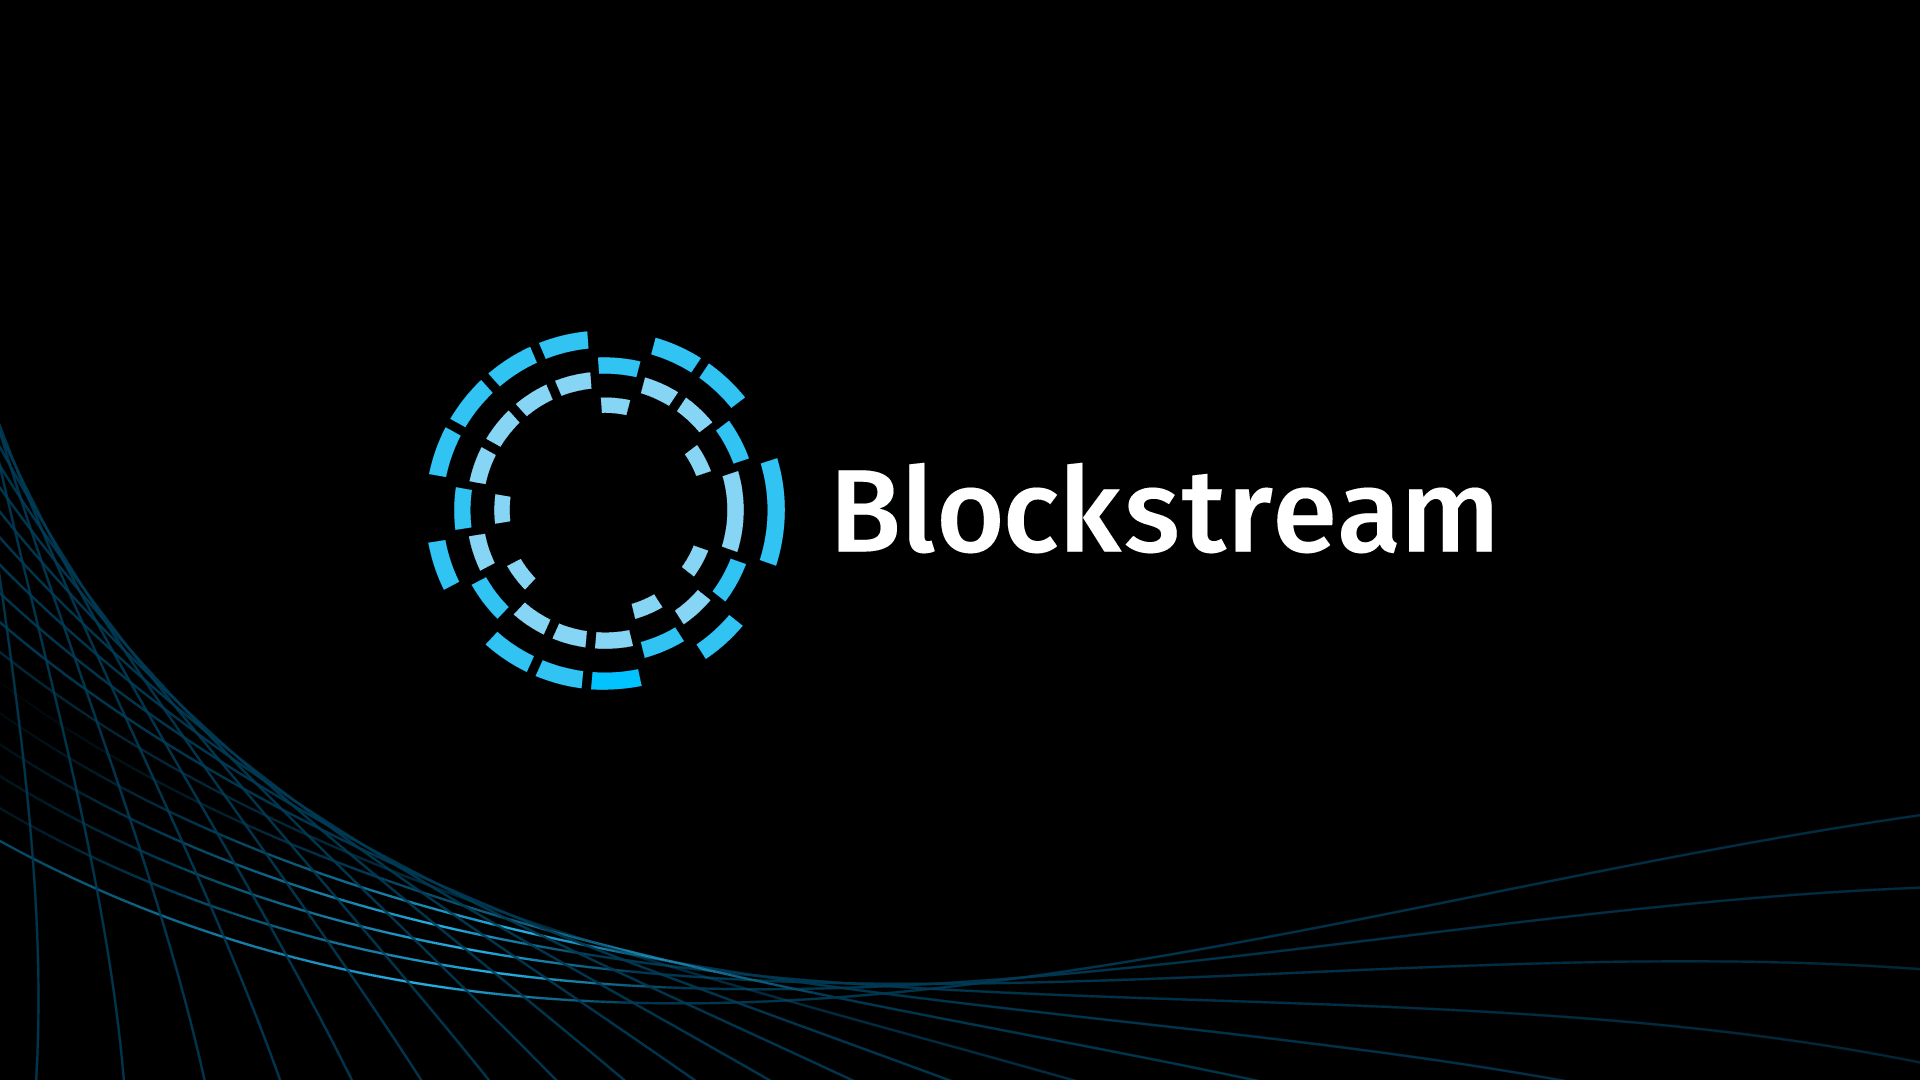 Digital Garage and Blockstream Expand Partnership to Accelerate Cryptocurrency and Blockchain Deployments in Japan